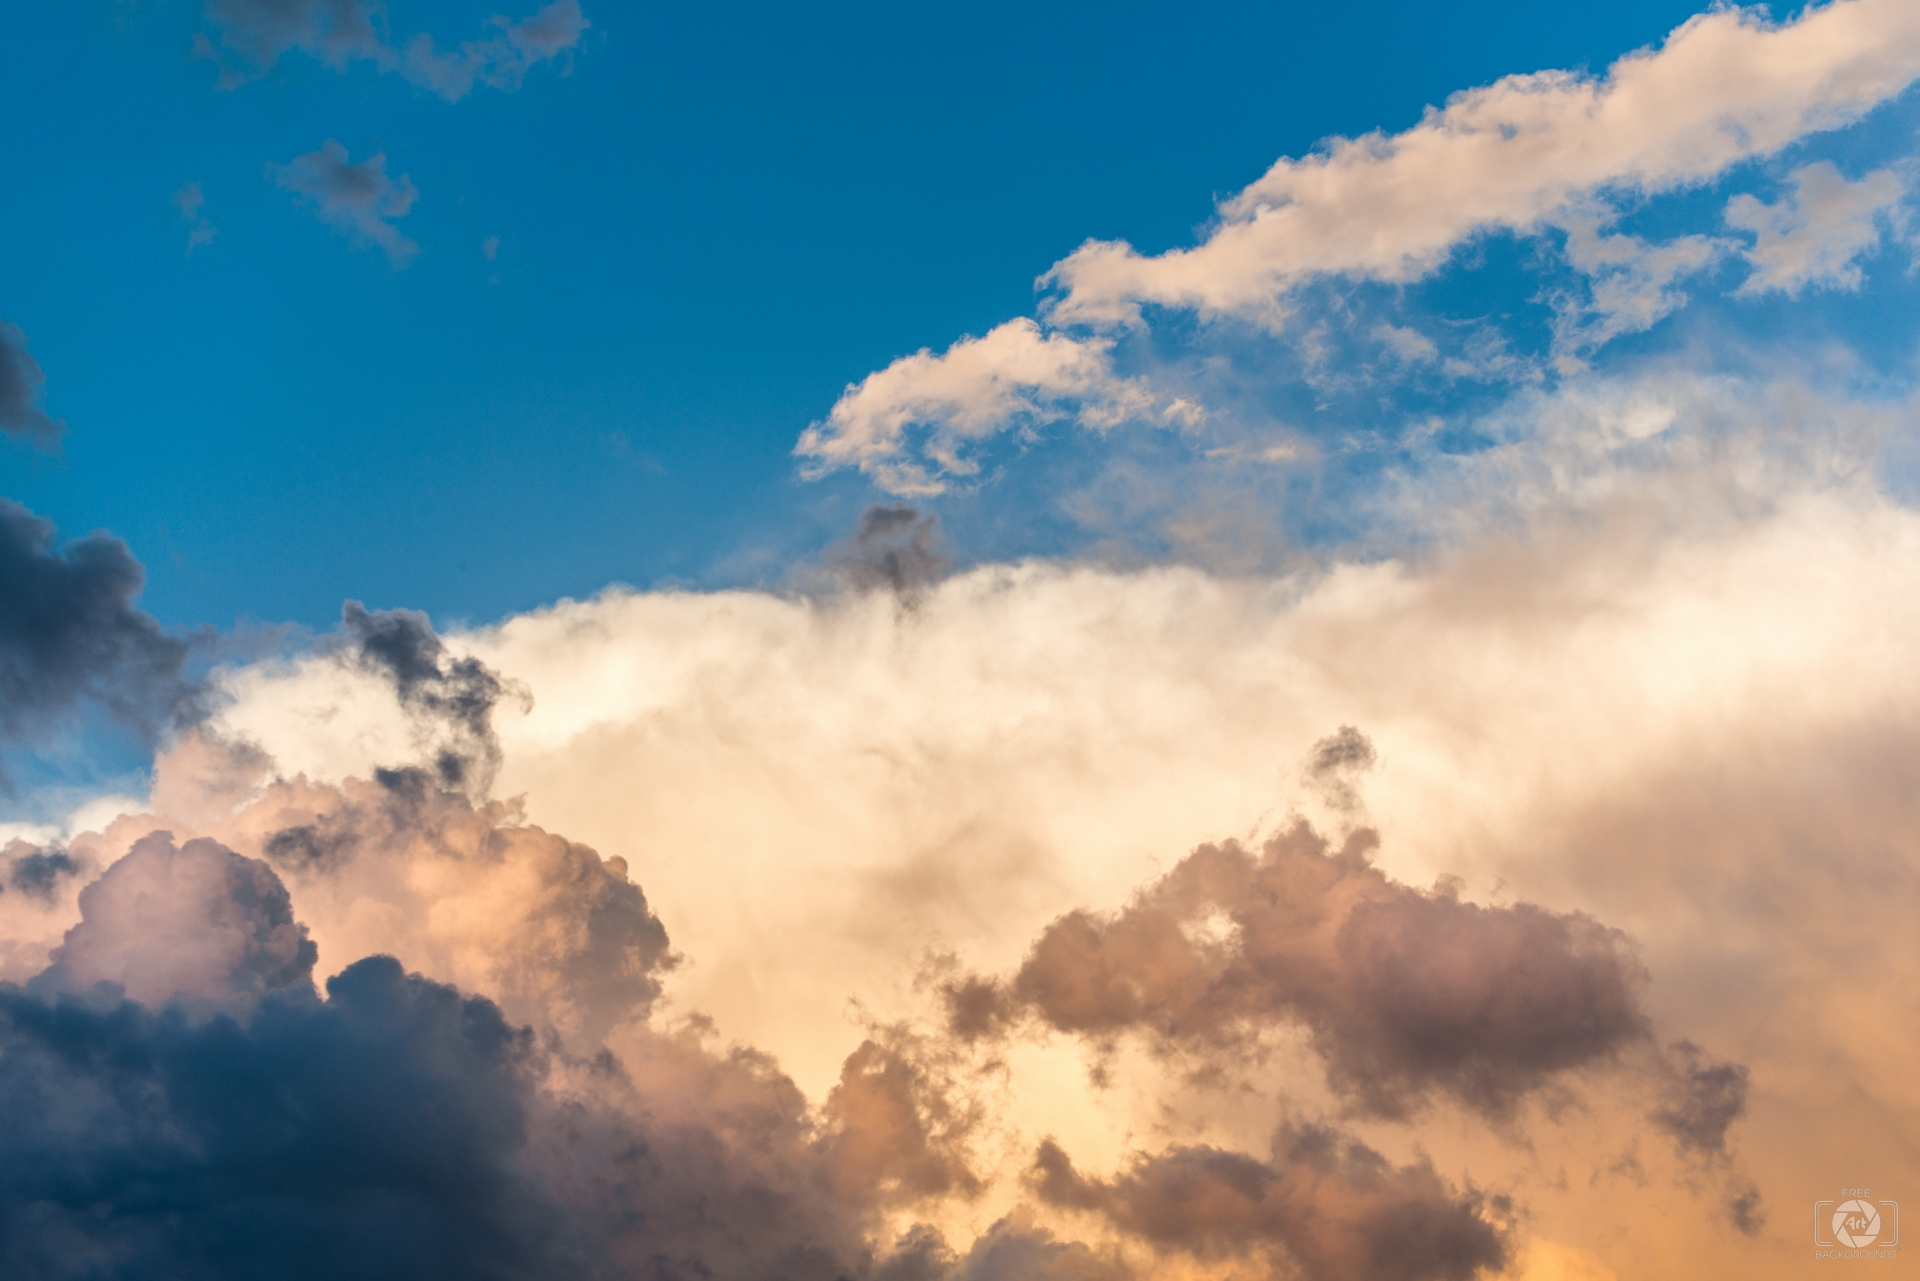 Beautiful Sky and Clouds Background - High-quality Free Backgrounds